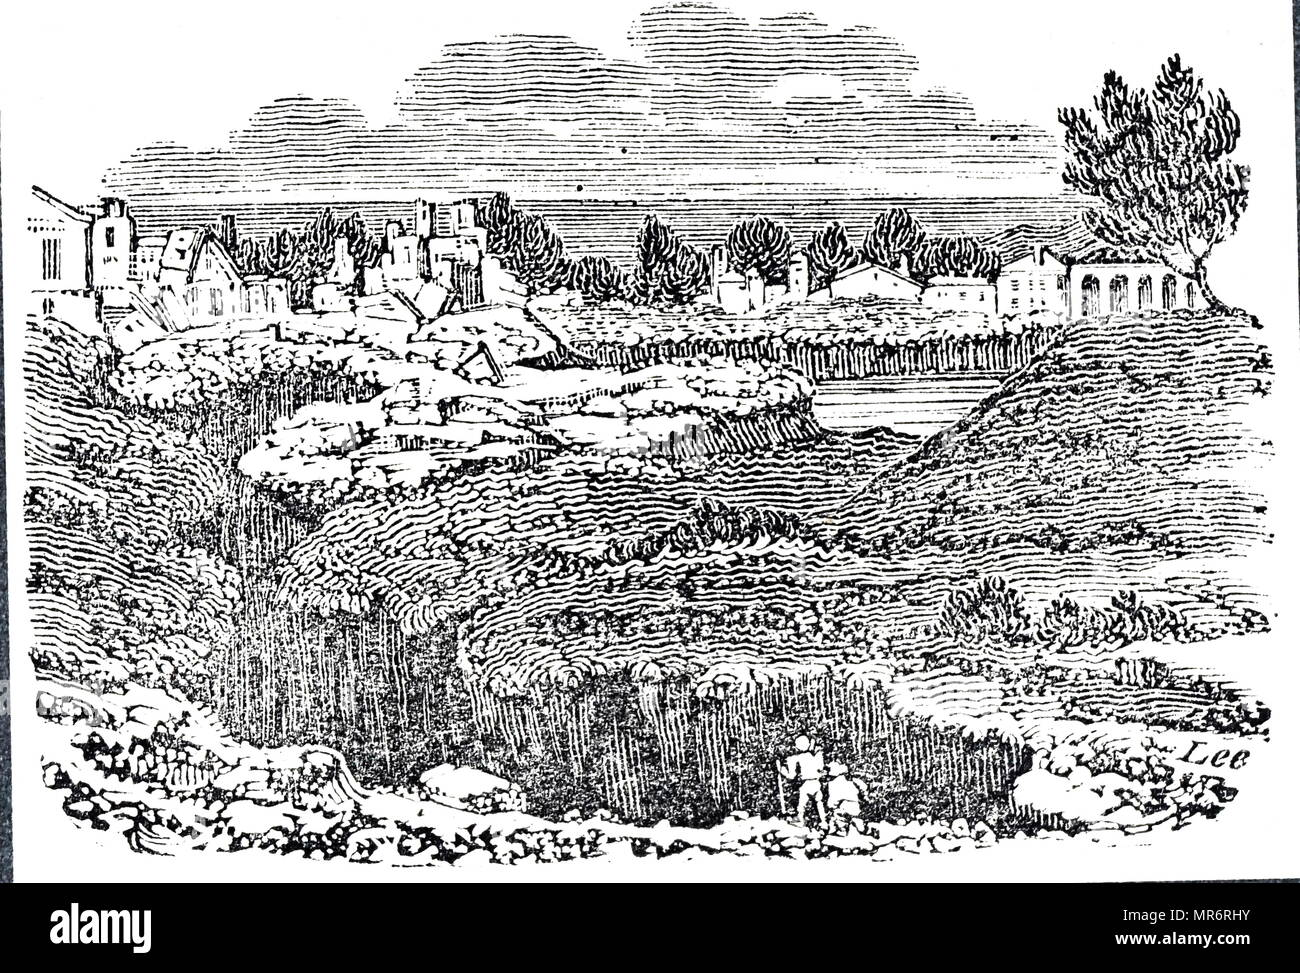 Engraving depicting a fissure in the ground near Polistena, caused by the 1783 Calabria earthquakes.  The earthquakes were a sequence of five strong earthquakes that hit the region of Calabria in southern Italy, the first two of which produced significant tsunamis. Dated 19th century - Stock Image